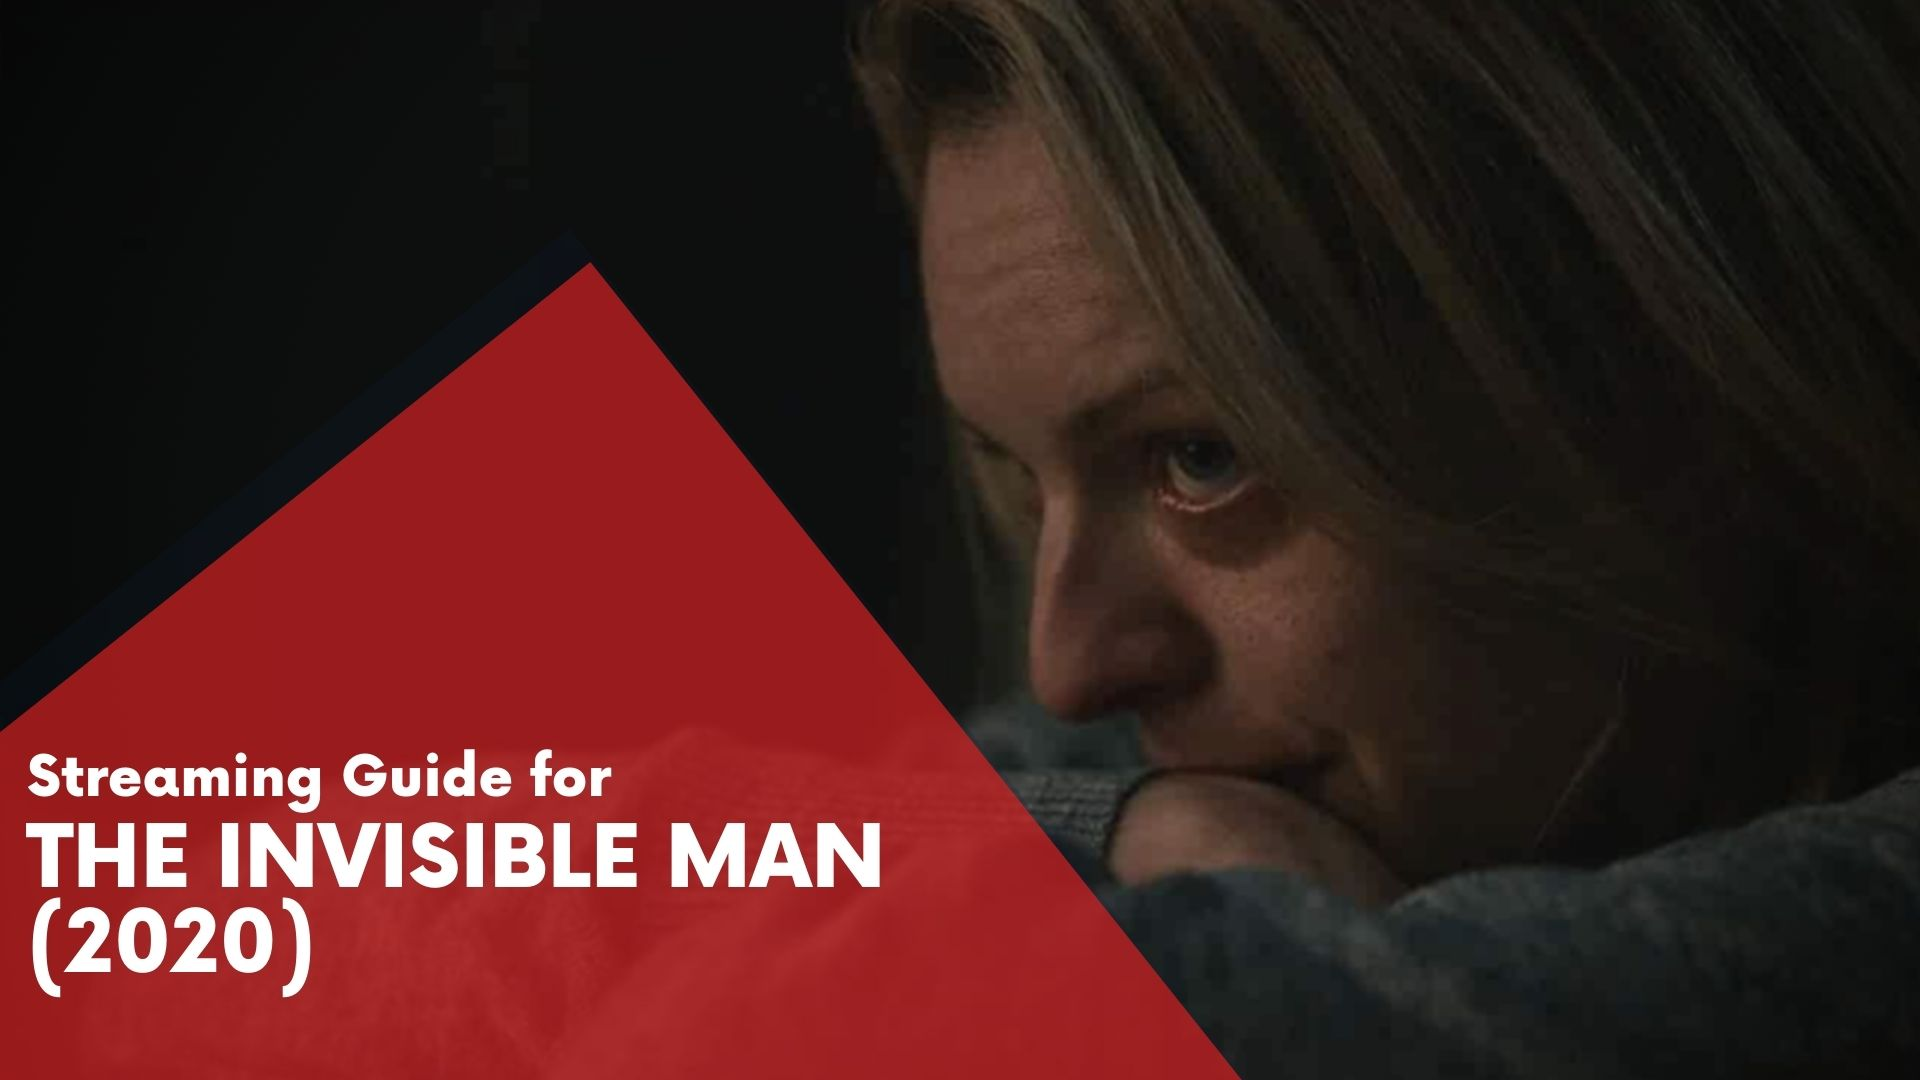 The Invisible Man Streaming Guide